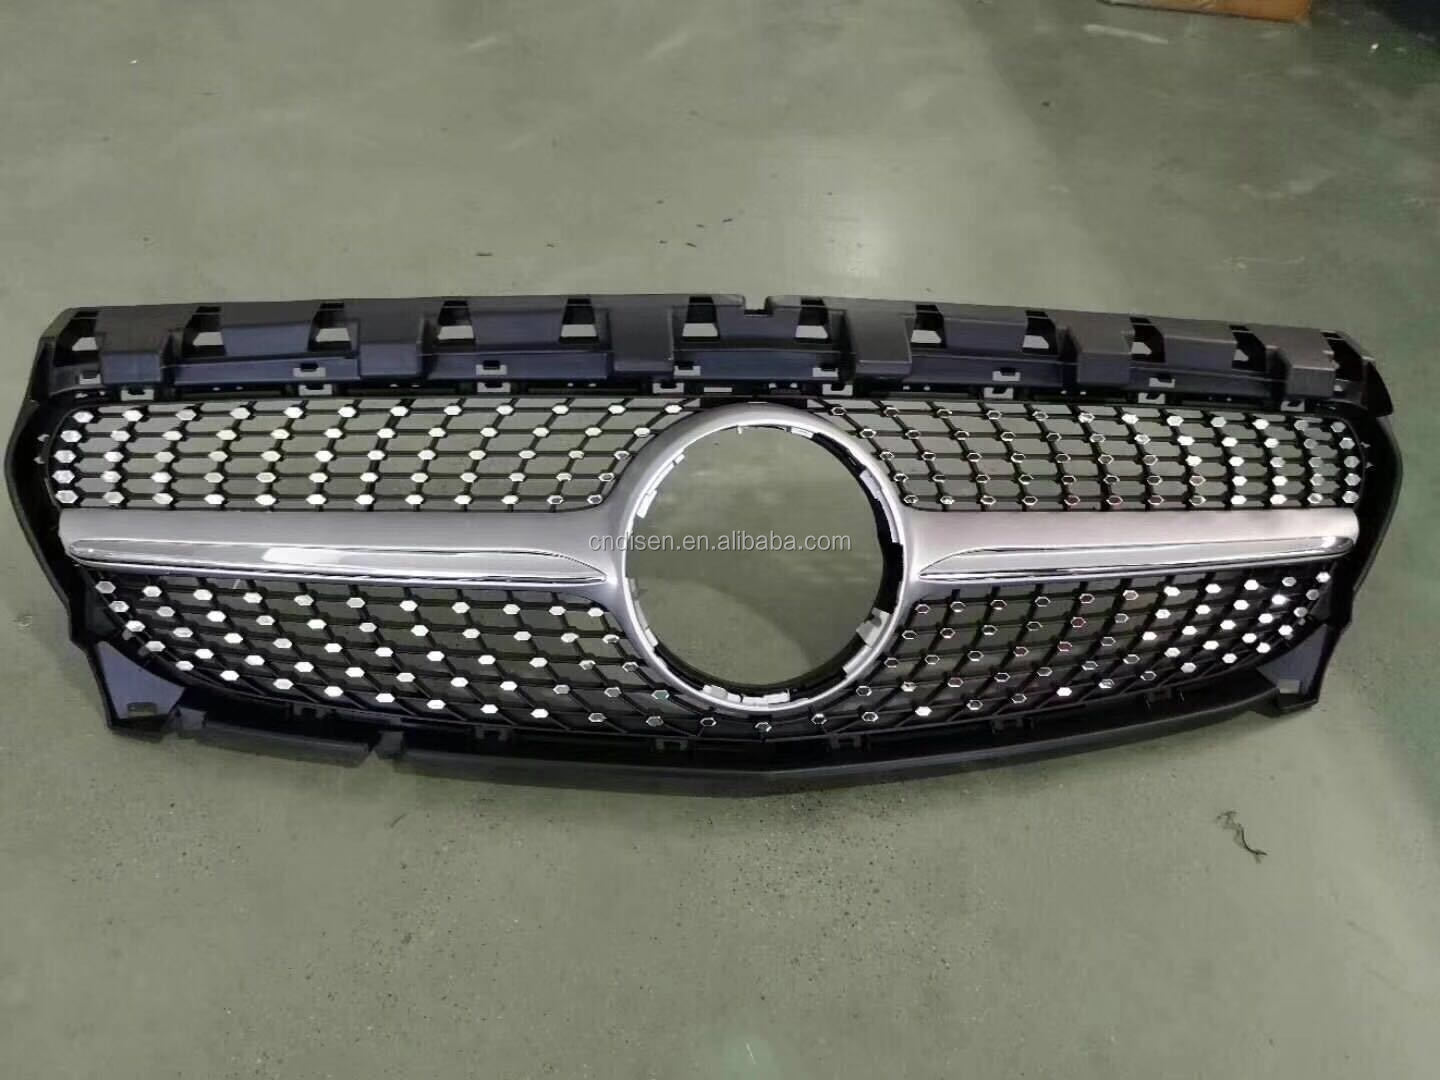 Front grille grill For Mercedes Benz GLA 2014-2017 x156 diamond